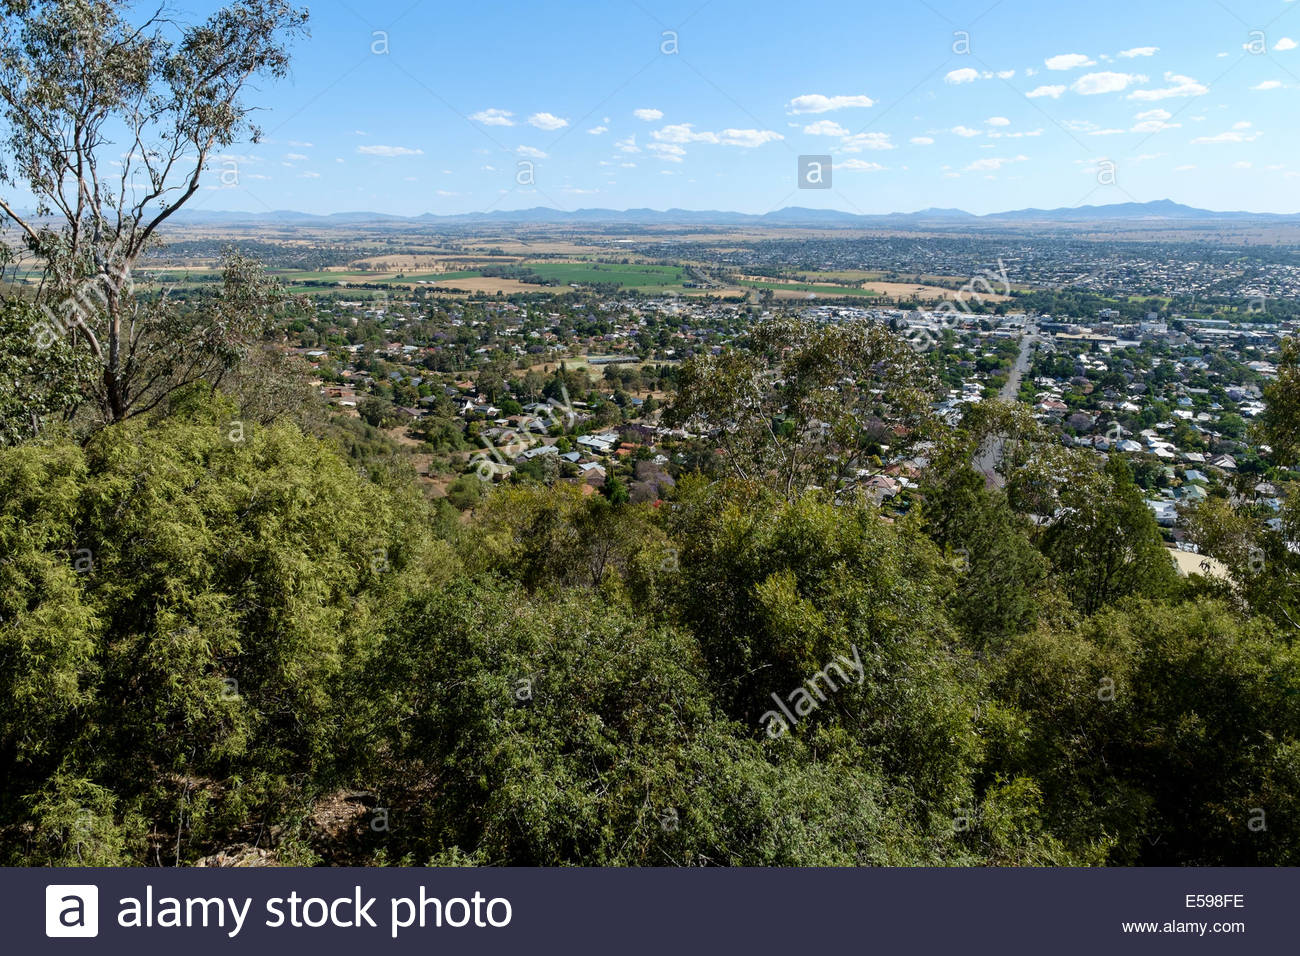 Oxley Scenic Lookout Tamworth, View over Tamworth, home of the